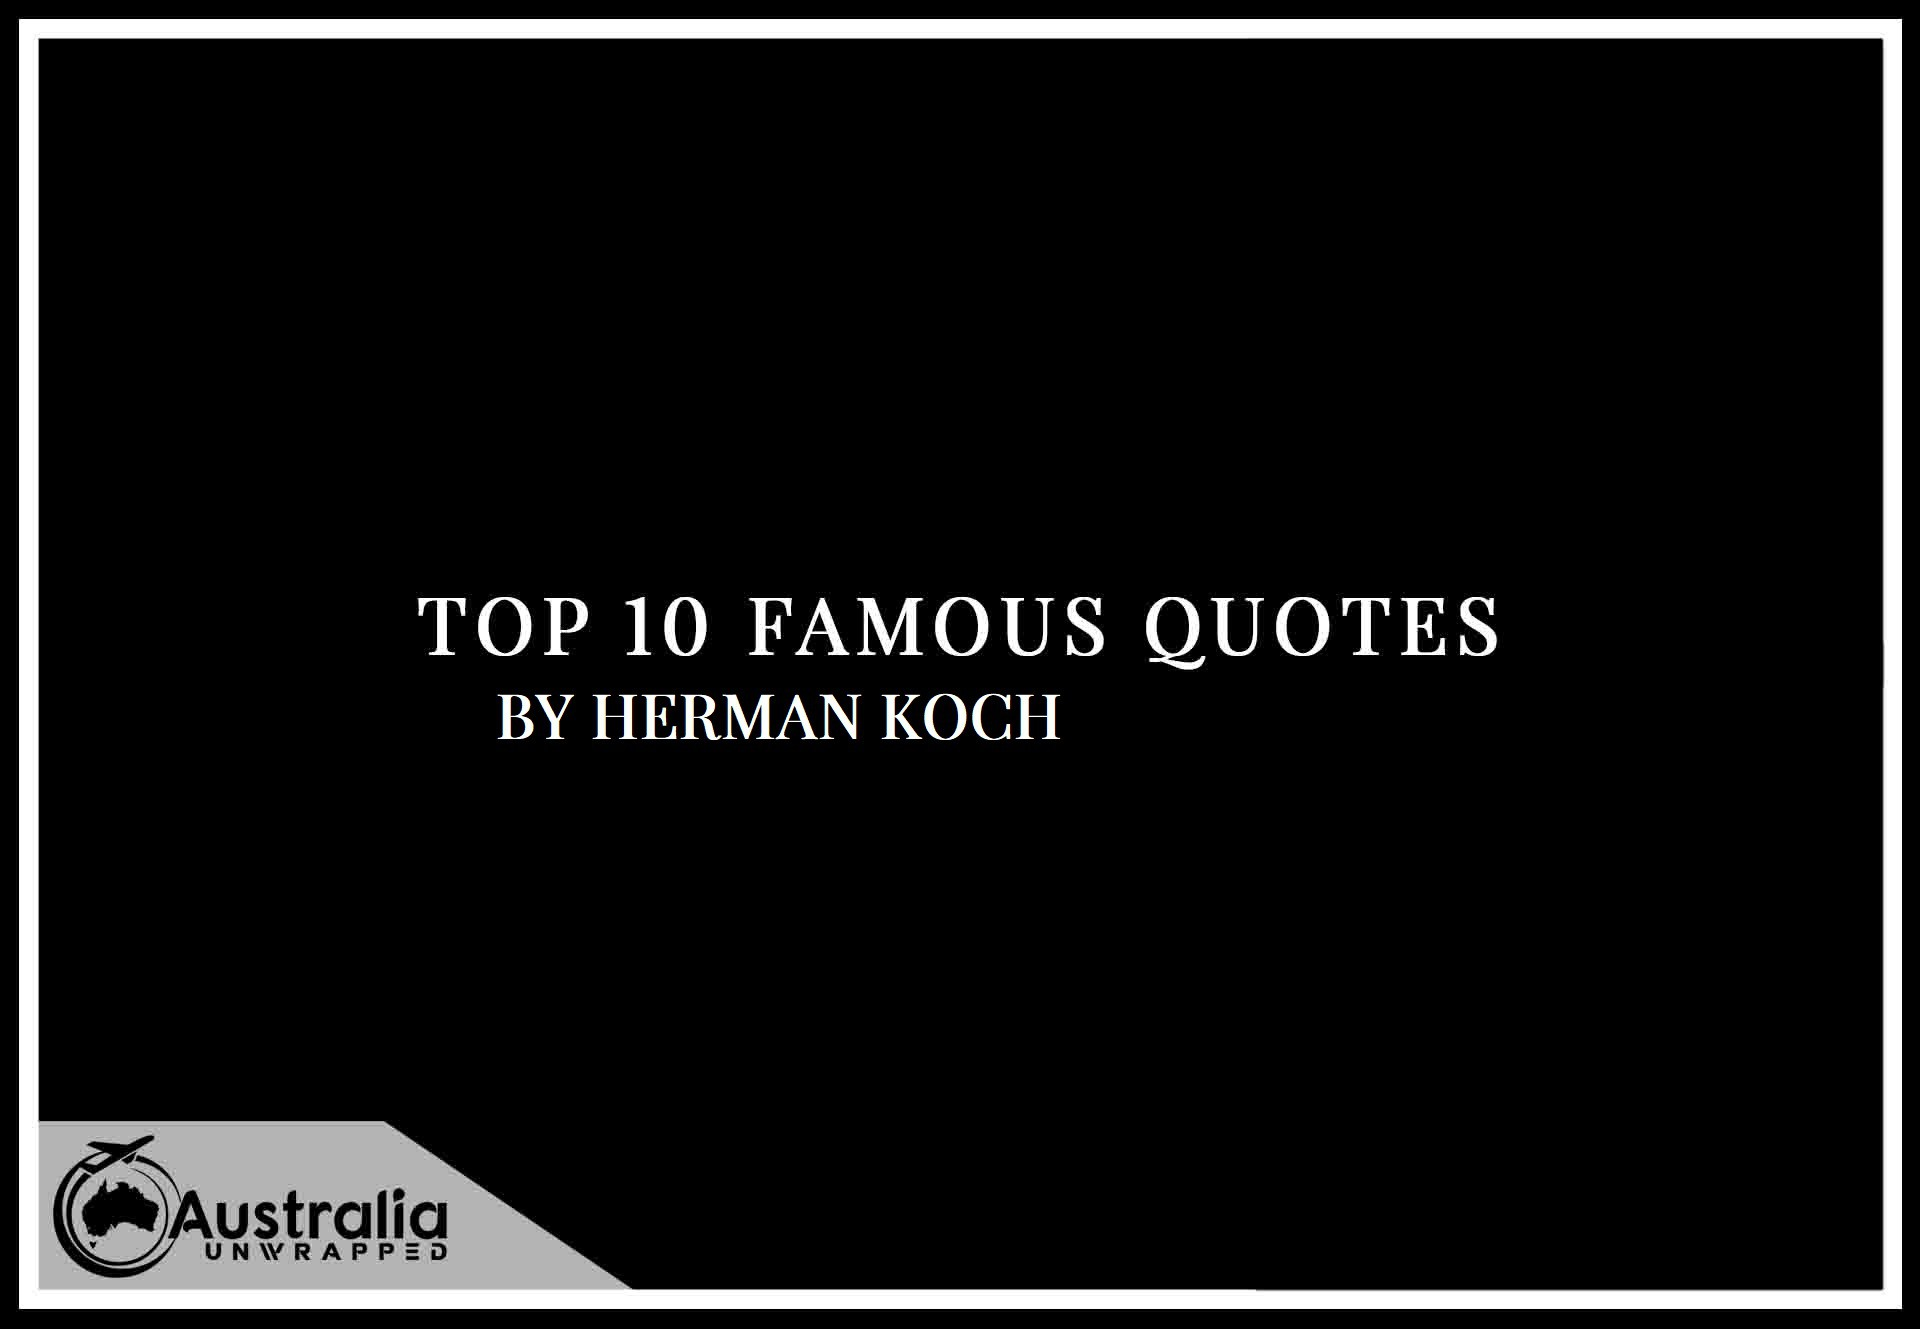 Top 10 Famous Quotes by Author Herman Koch